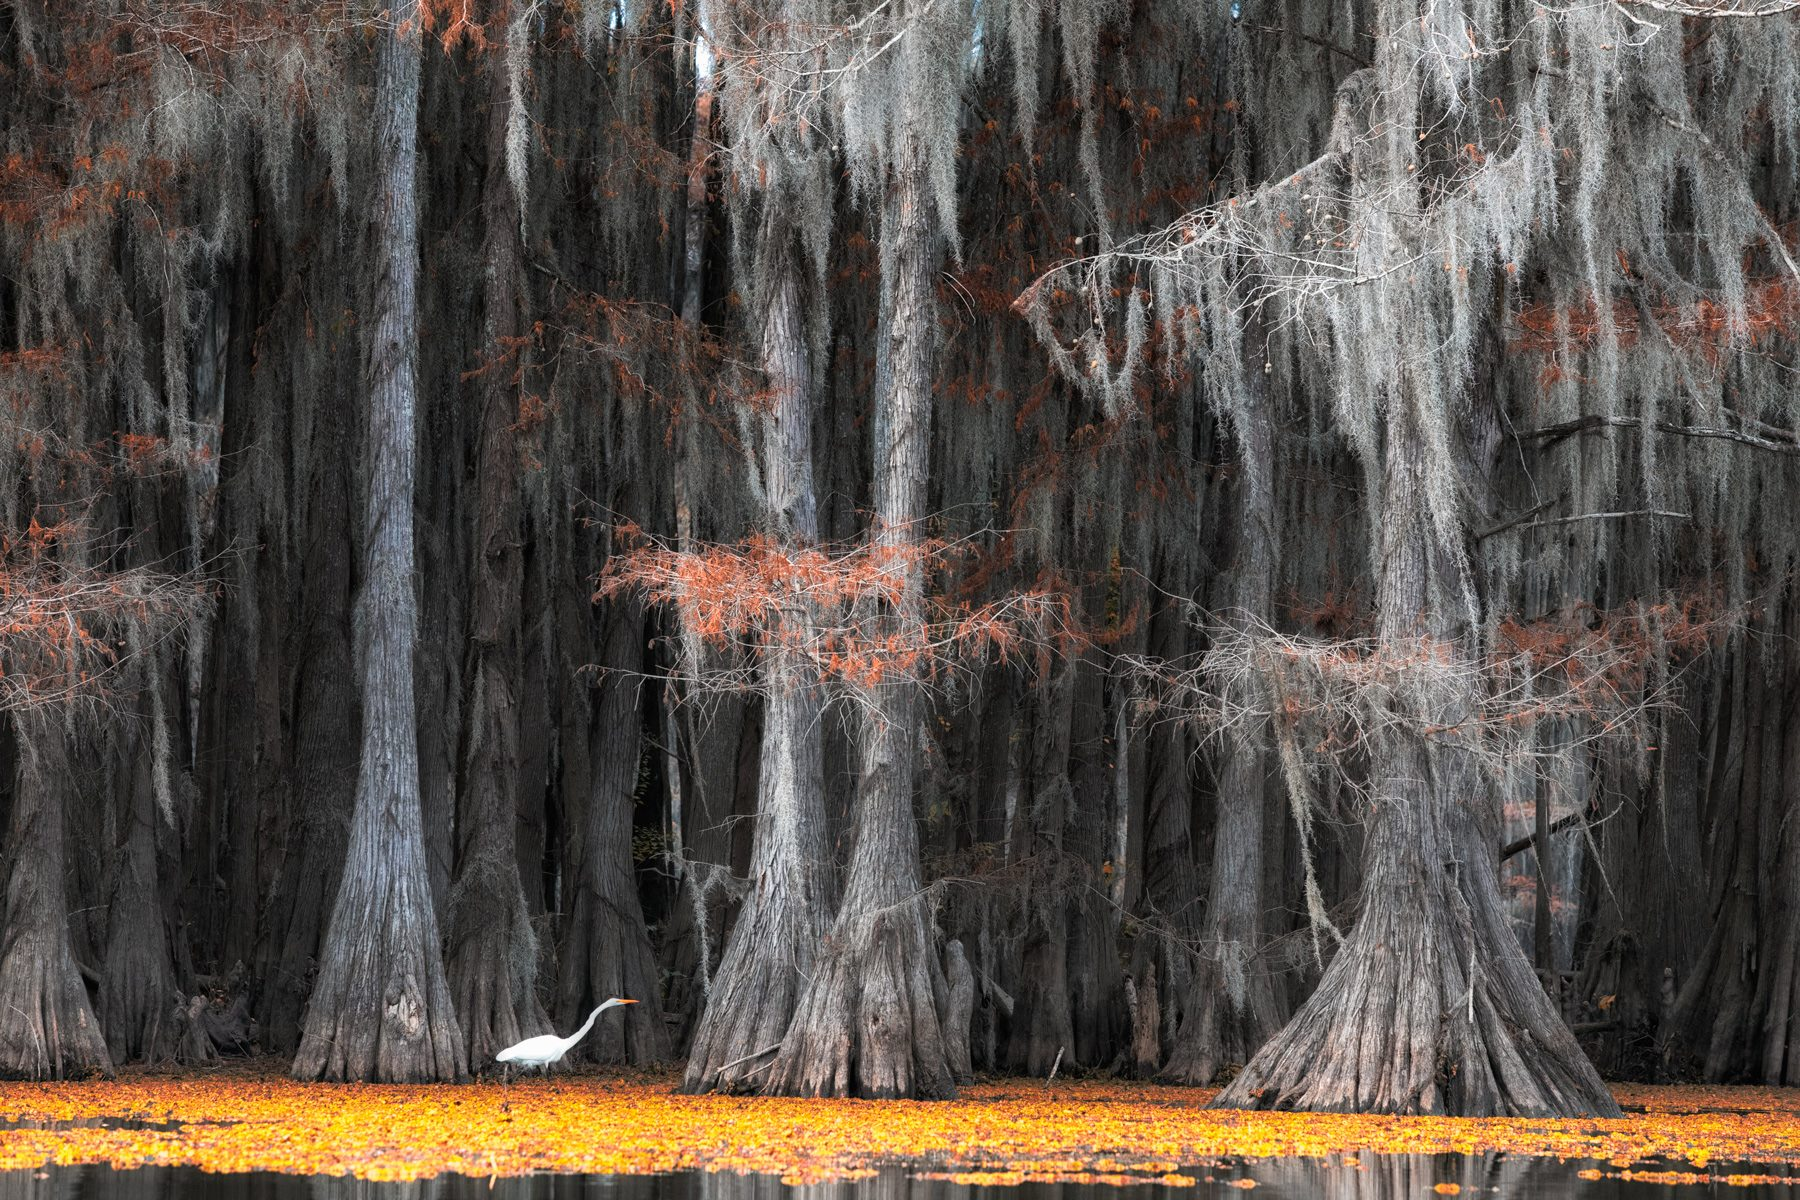 us, texas, #мояамерика, swamps, cypresses, egret, цапля, Маргарита Чернилова